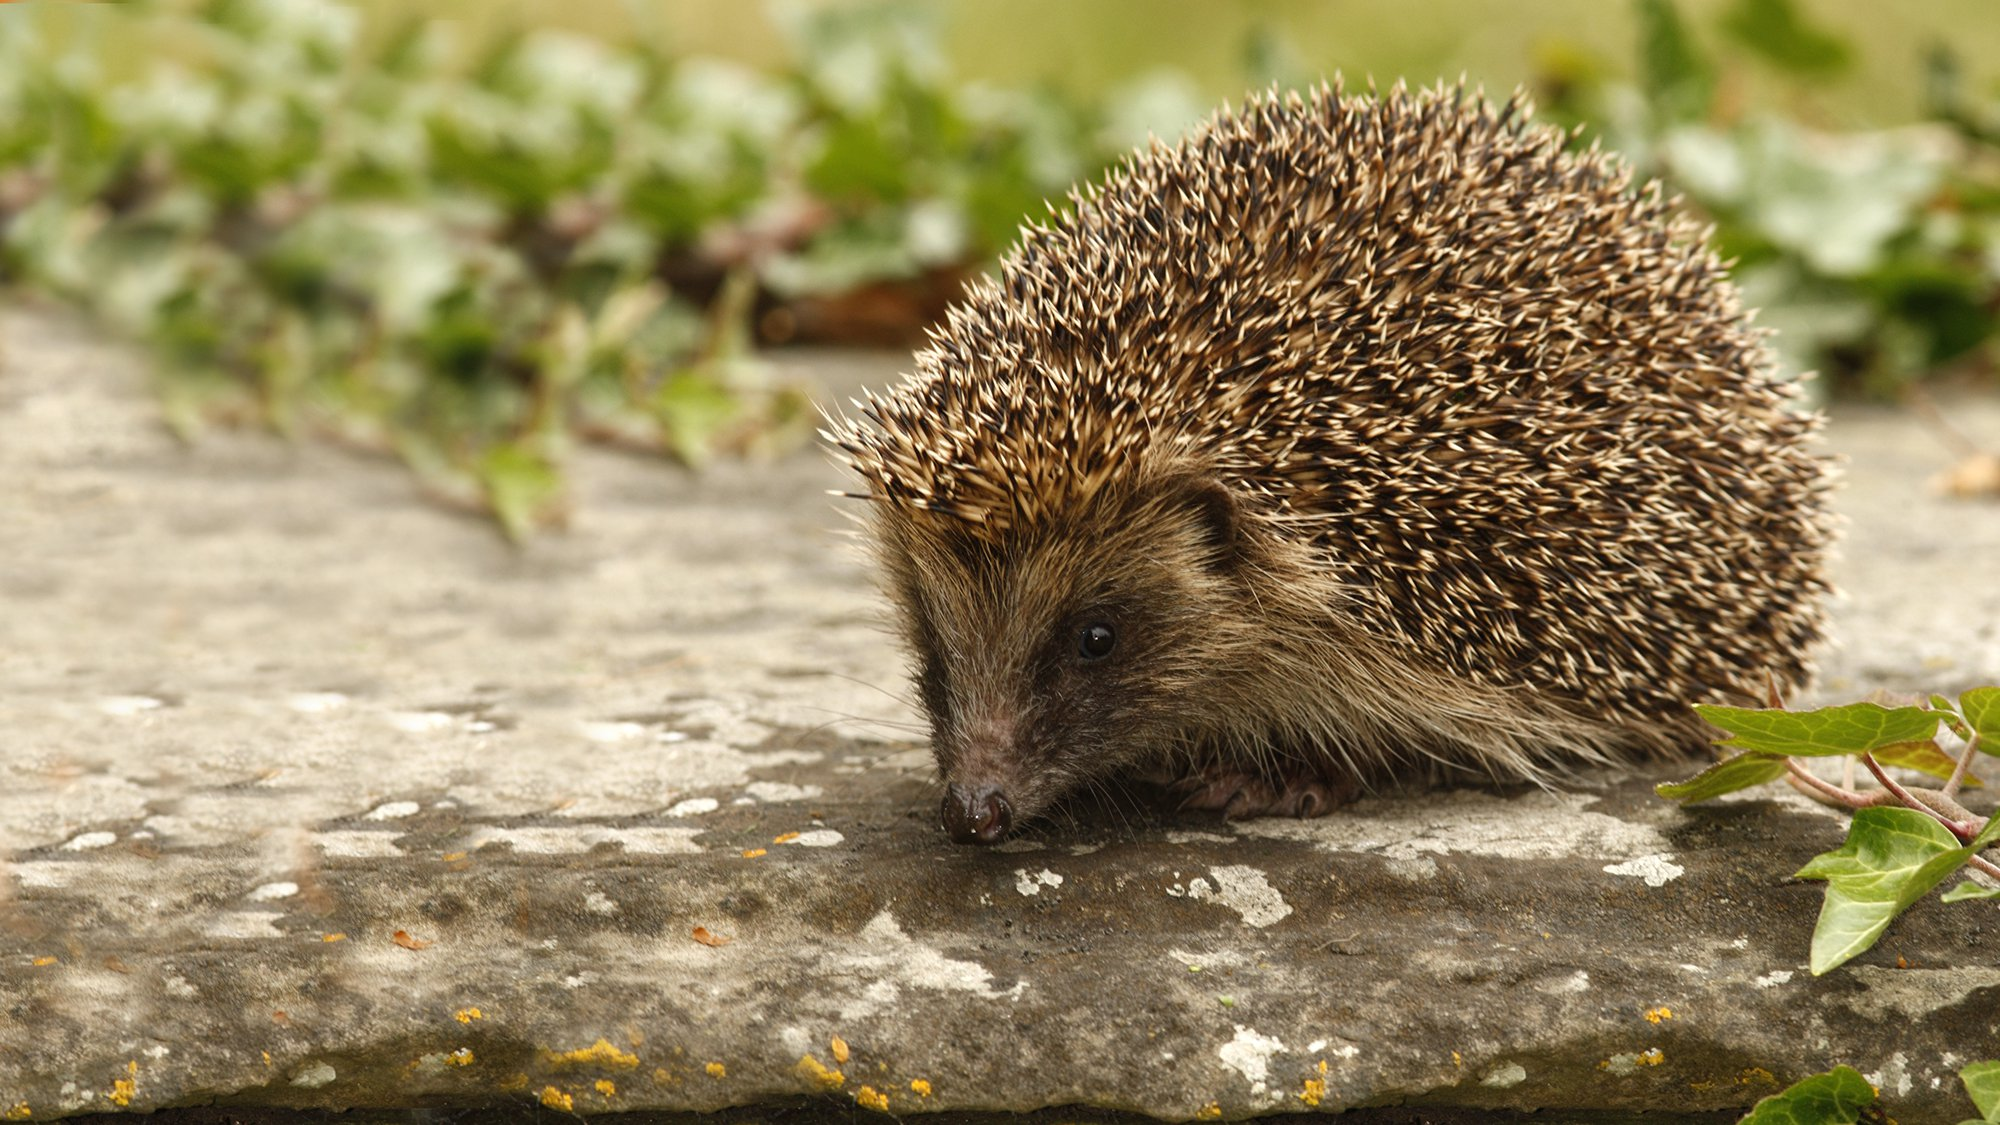 Hedgehogs could benefit agroforestry systems